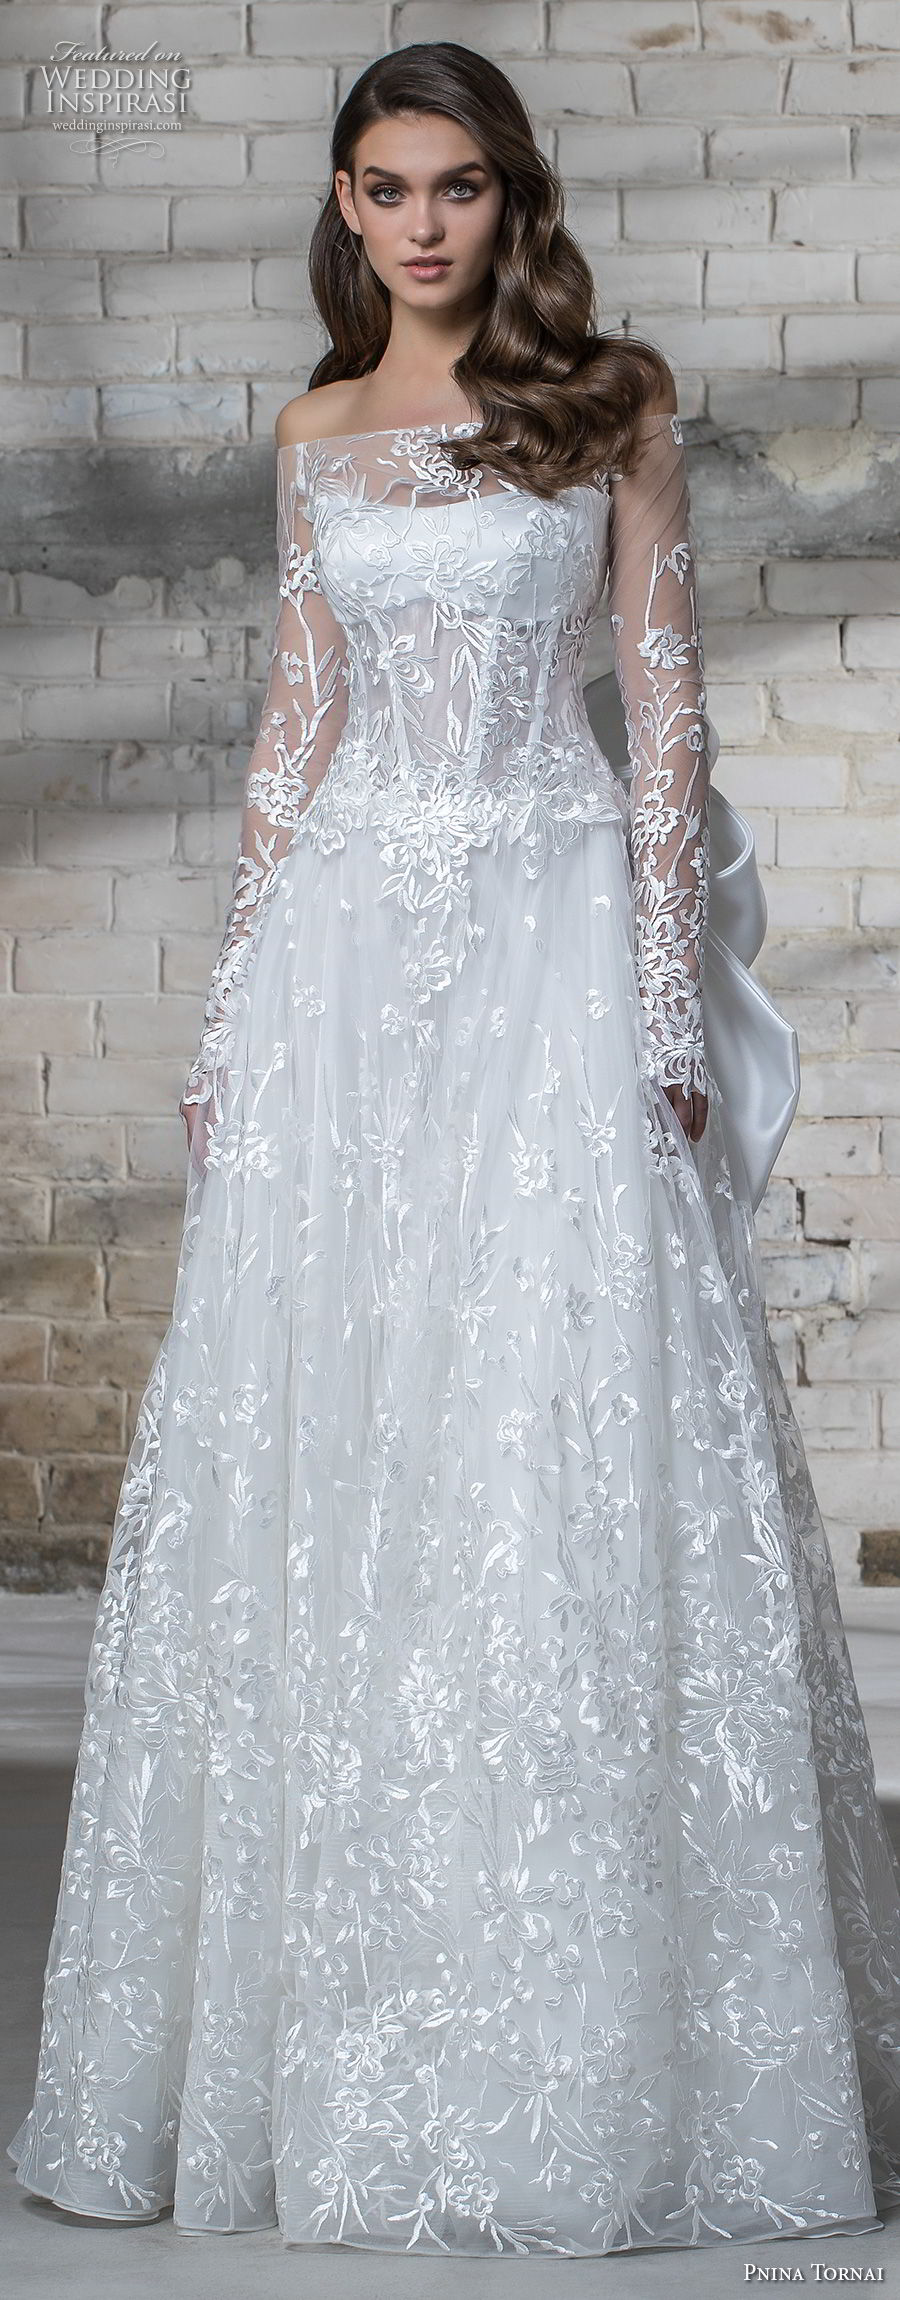 Pnina tornai 2019 wedding dresses love bridal for Pnina tornai wedding dresses prices